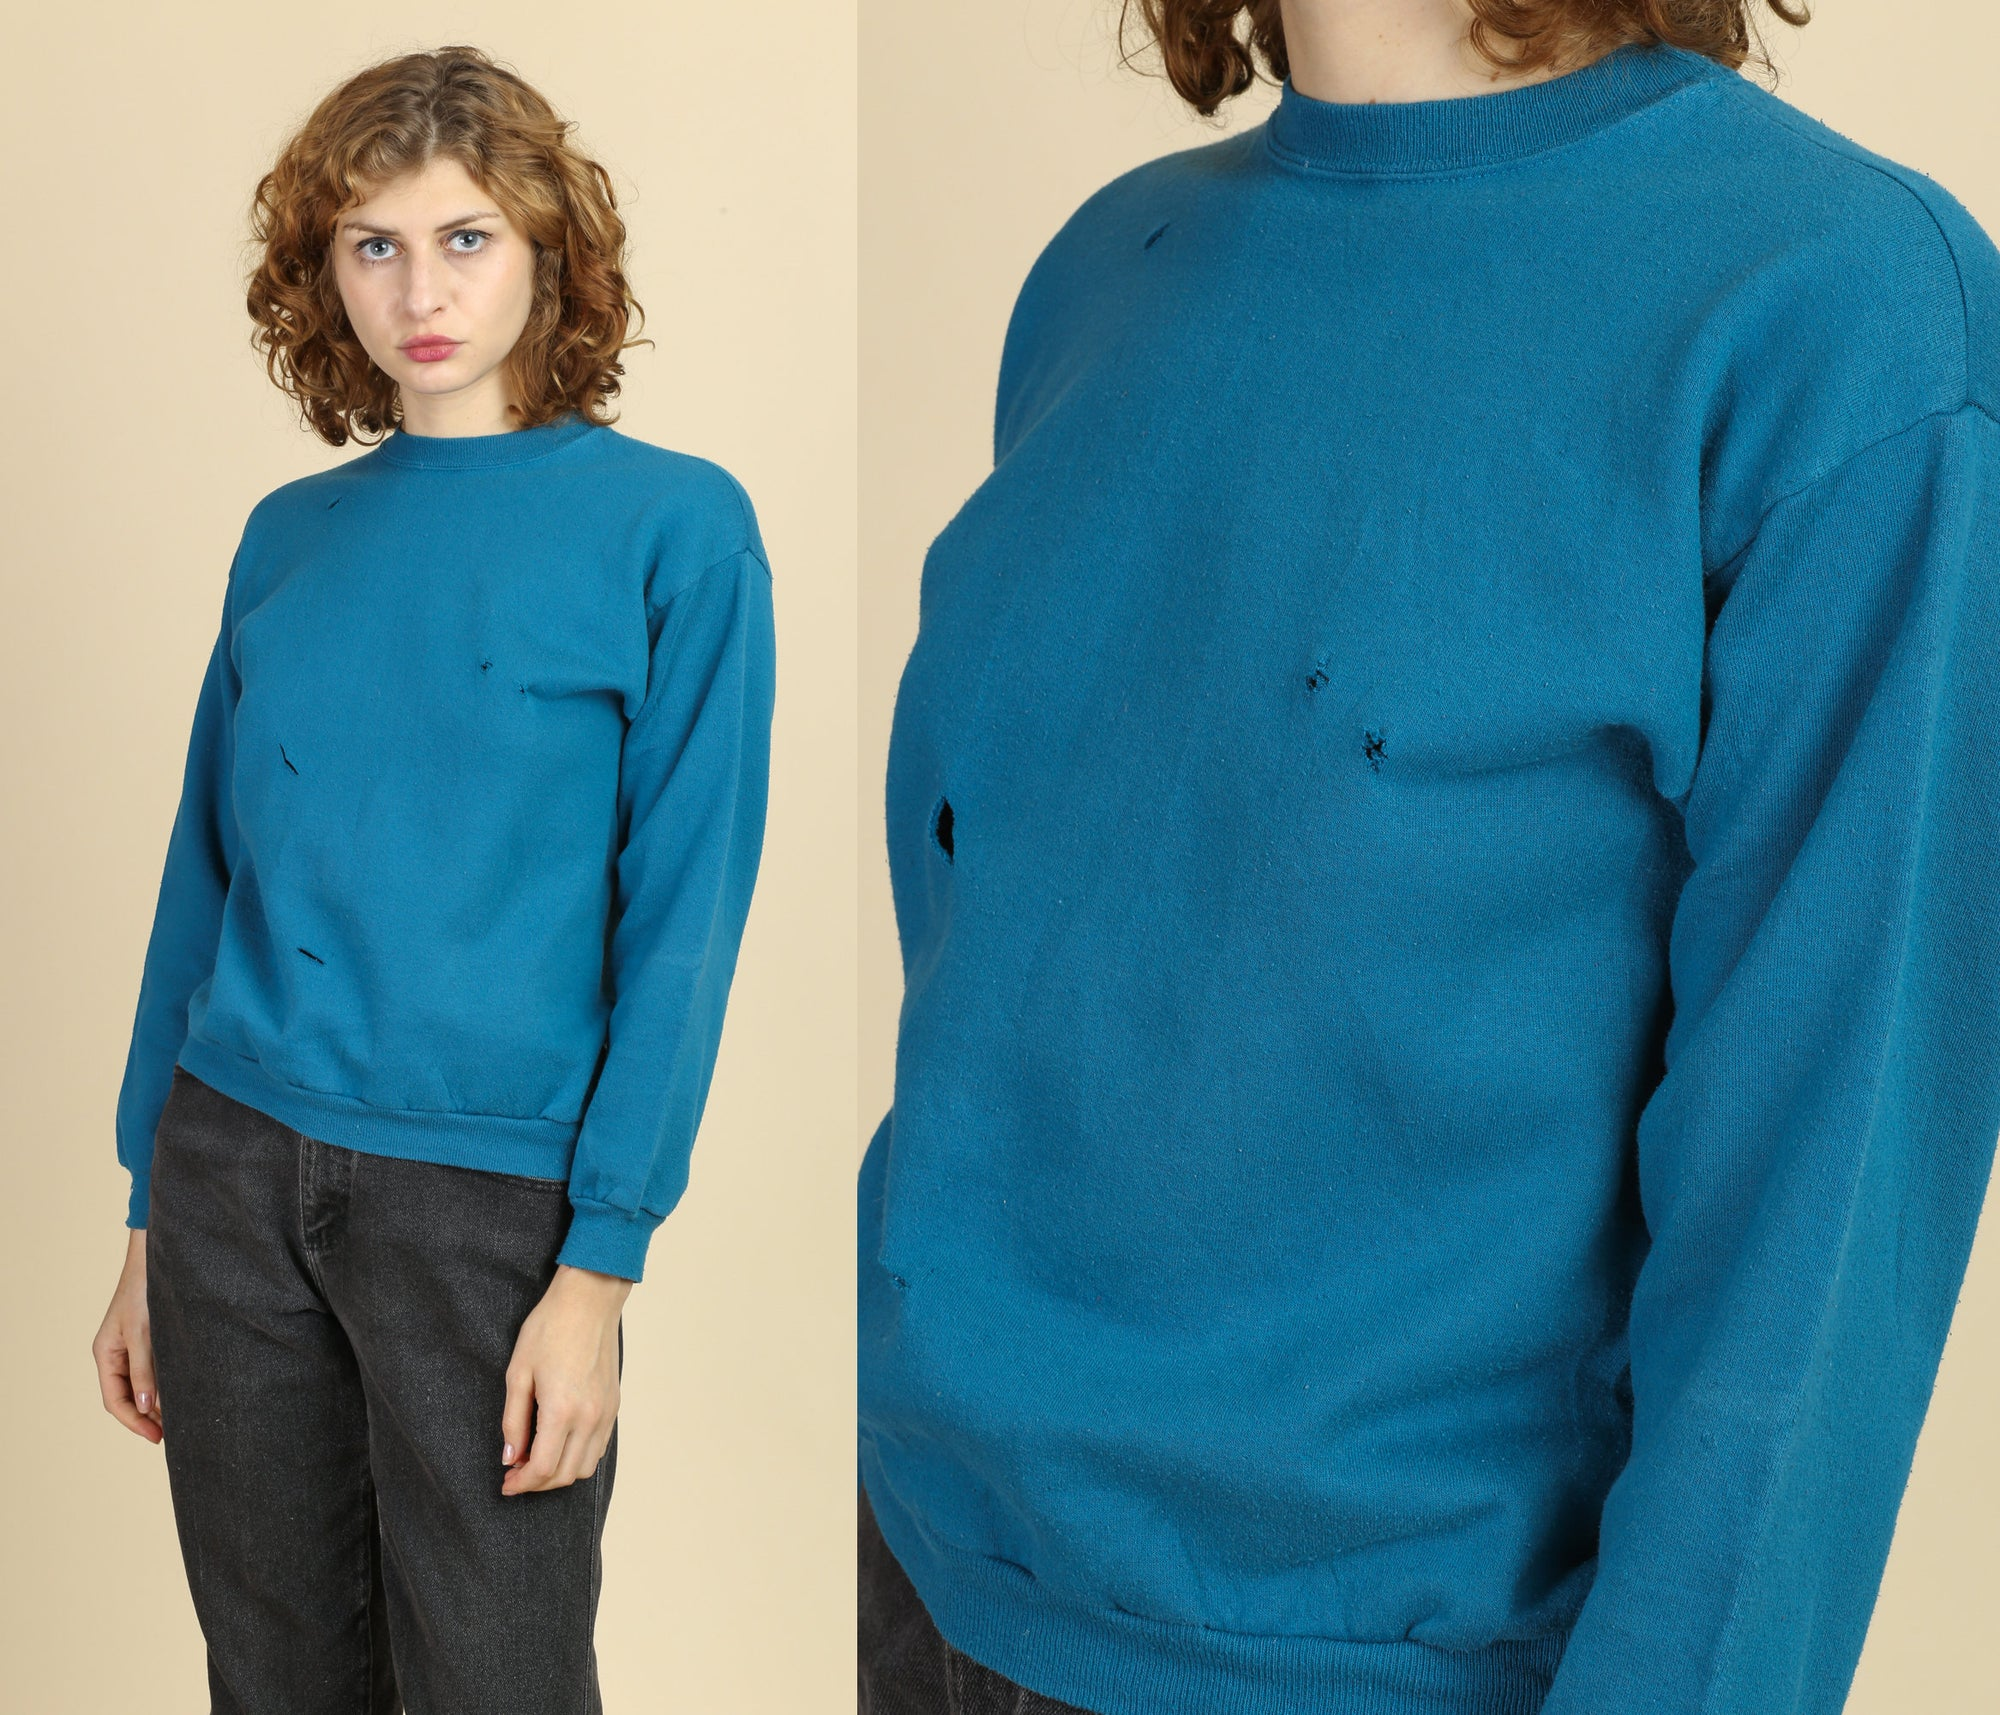 90s Blue Distressed Sweatshirt - Small